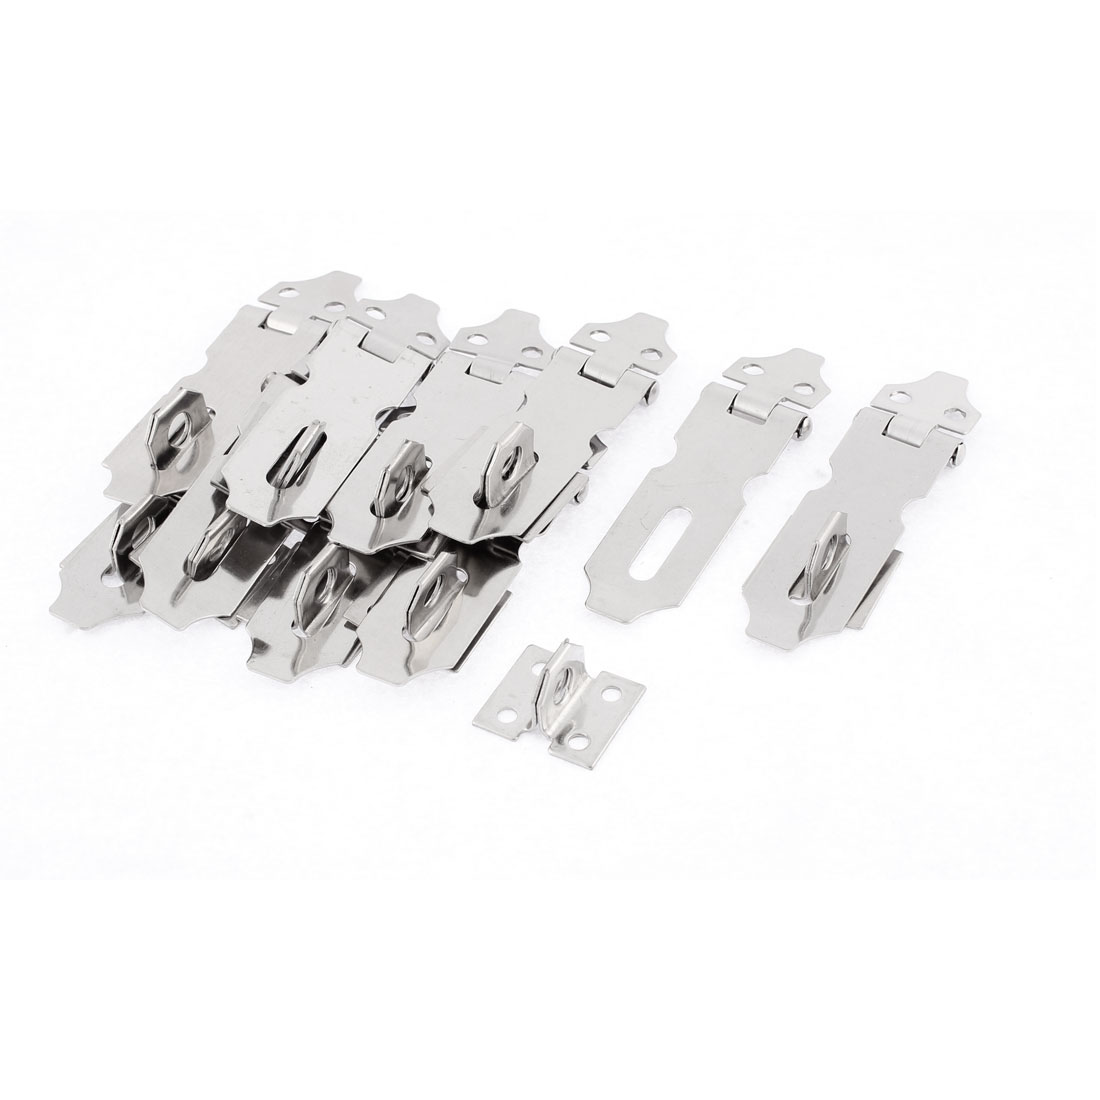 Warehouse Cabinet Stainless Steel Padlock Hasp Staple Set 59mm Length 10 Pcs